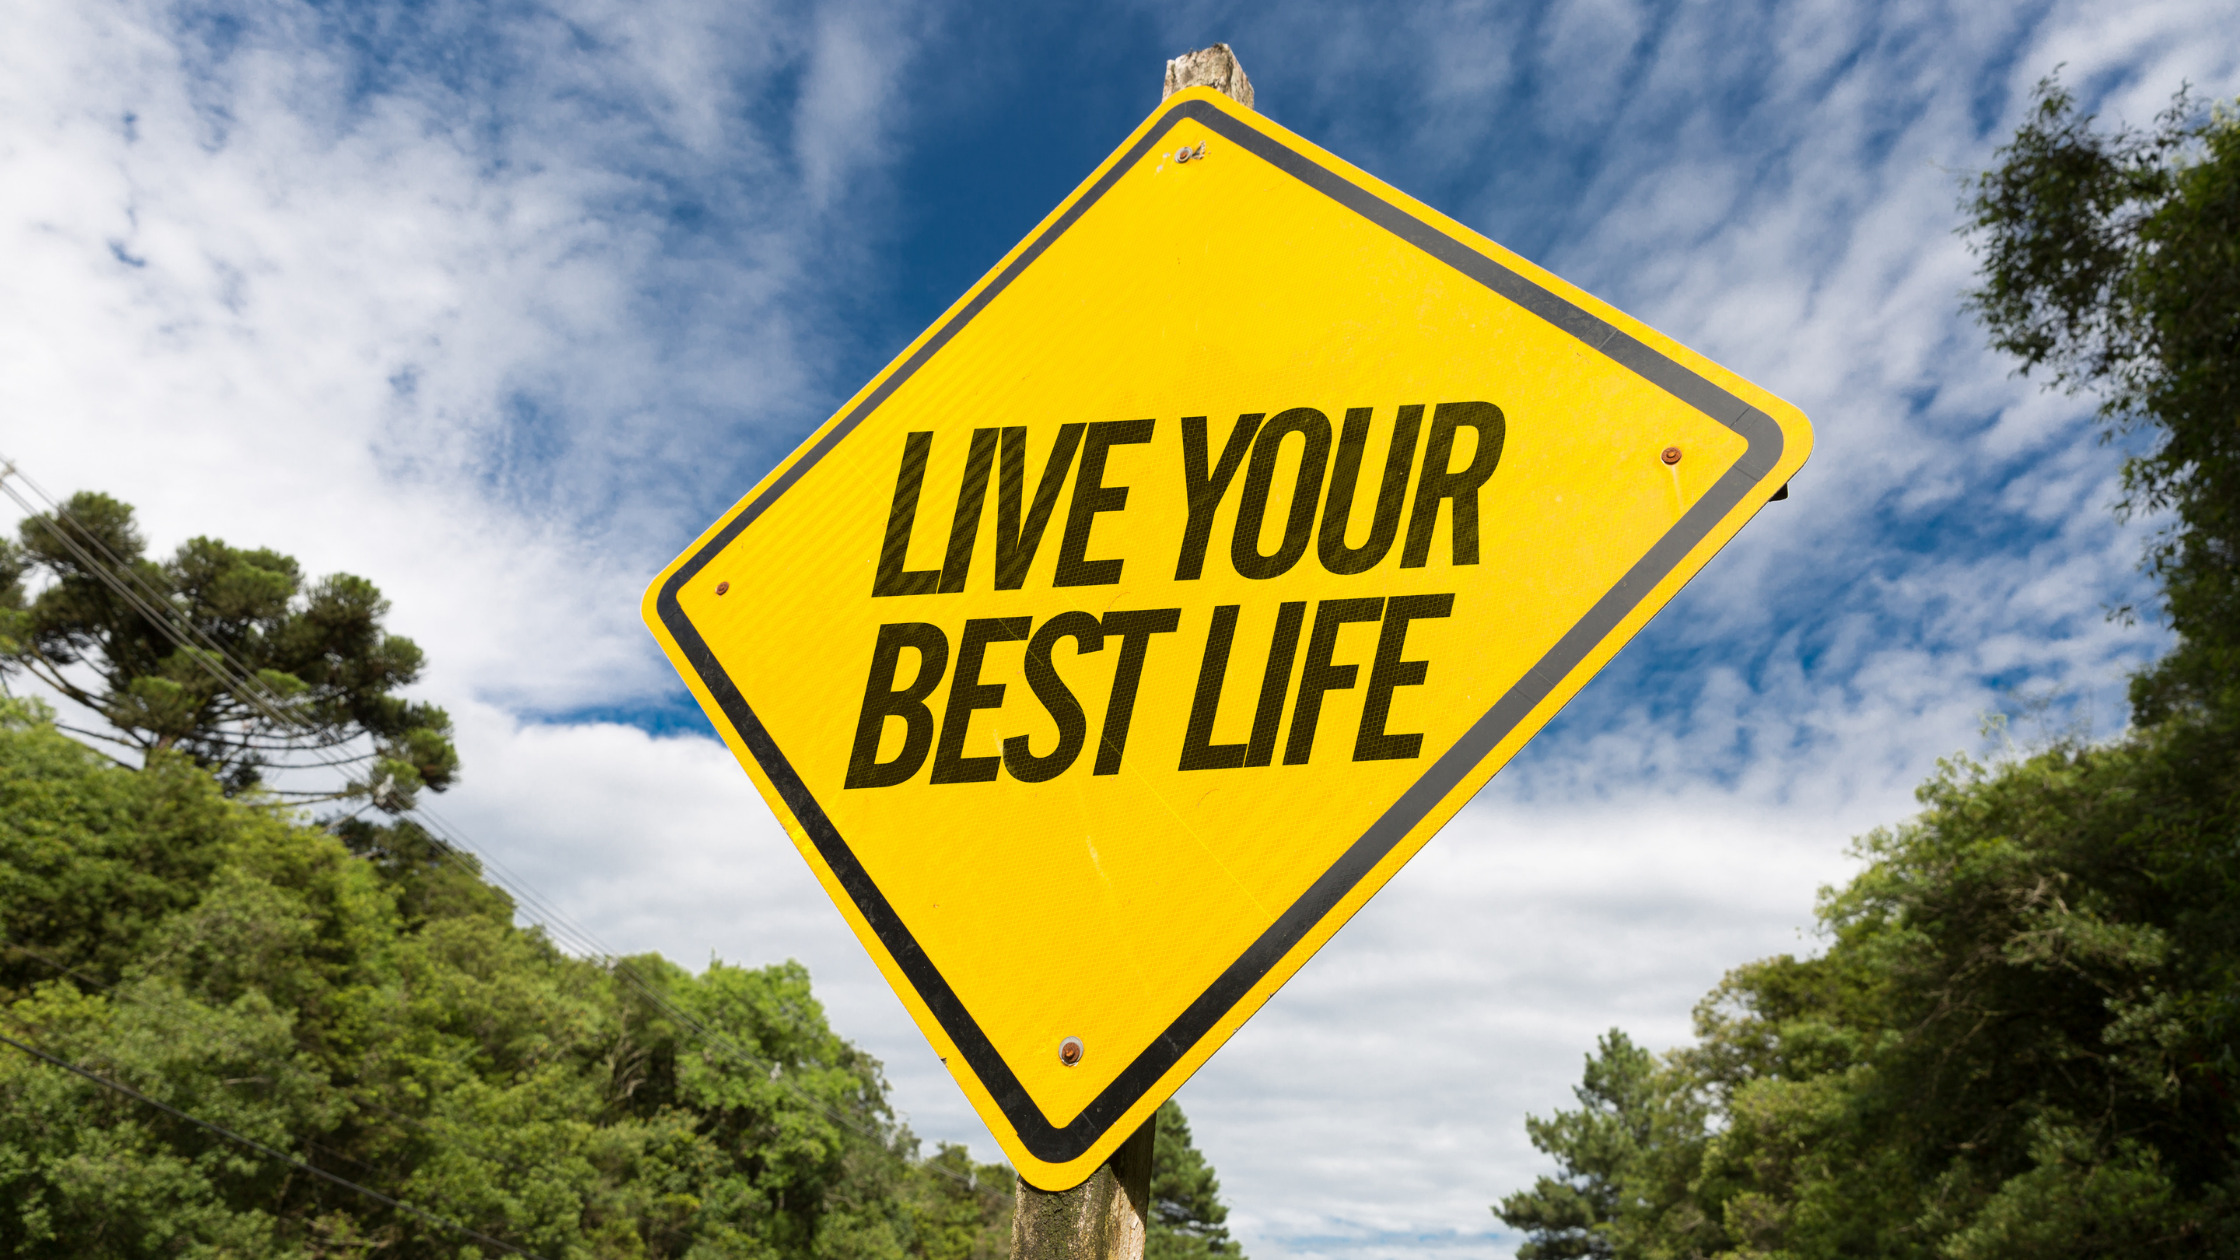 Live Your Best Life – Focus On What Matters Most